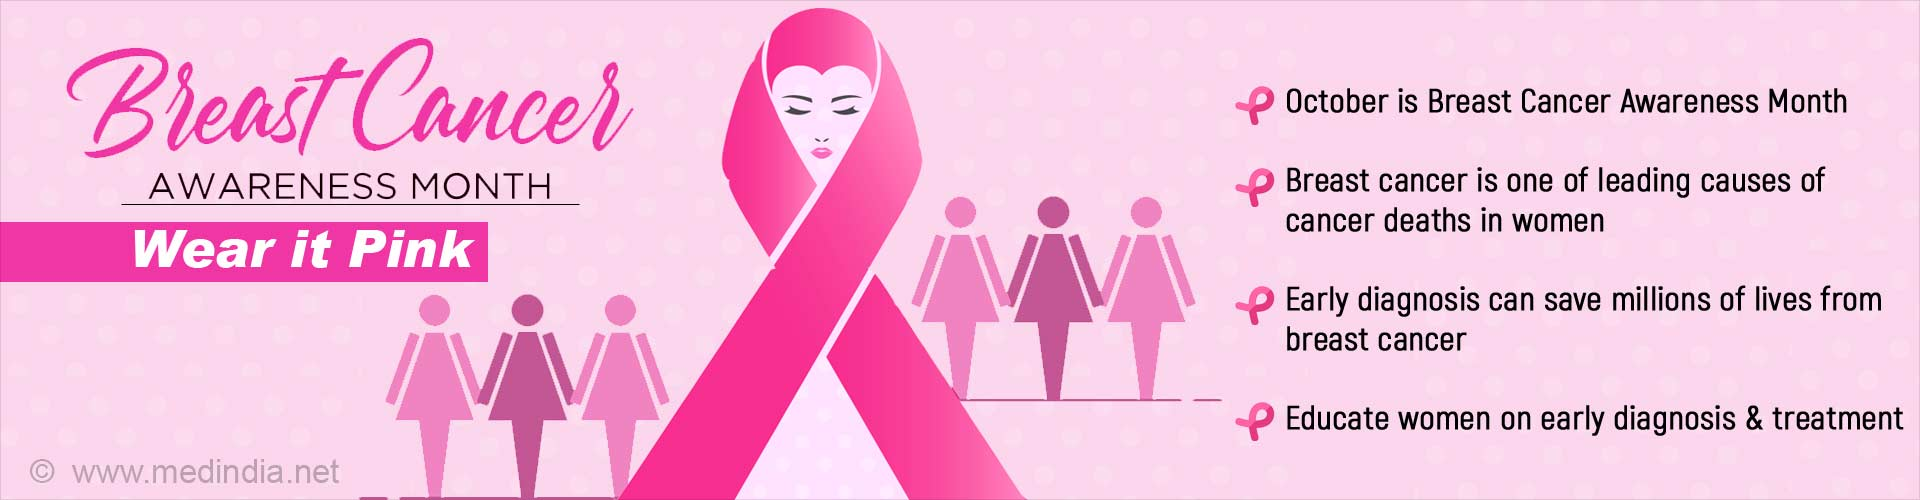 Breast Cancer Awareness Month - Let''s Unite in the Fight Against Breast Cancer